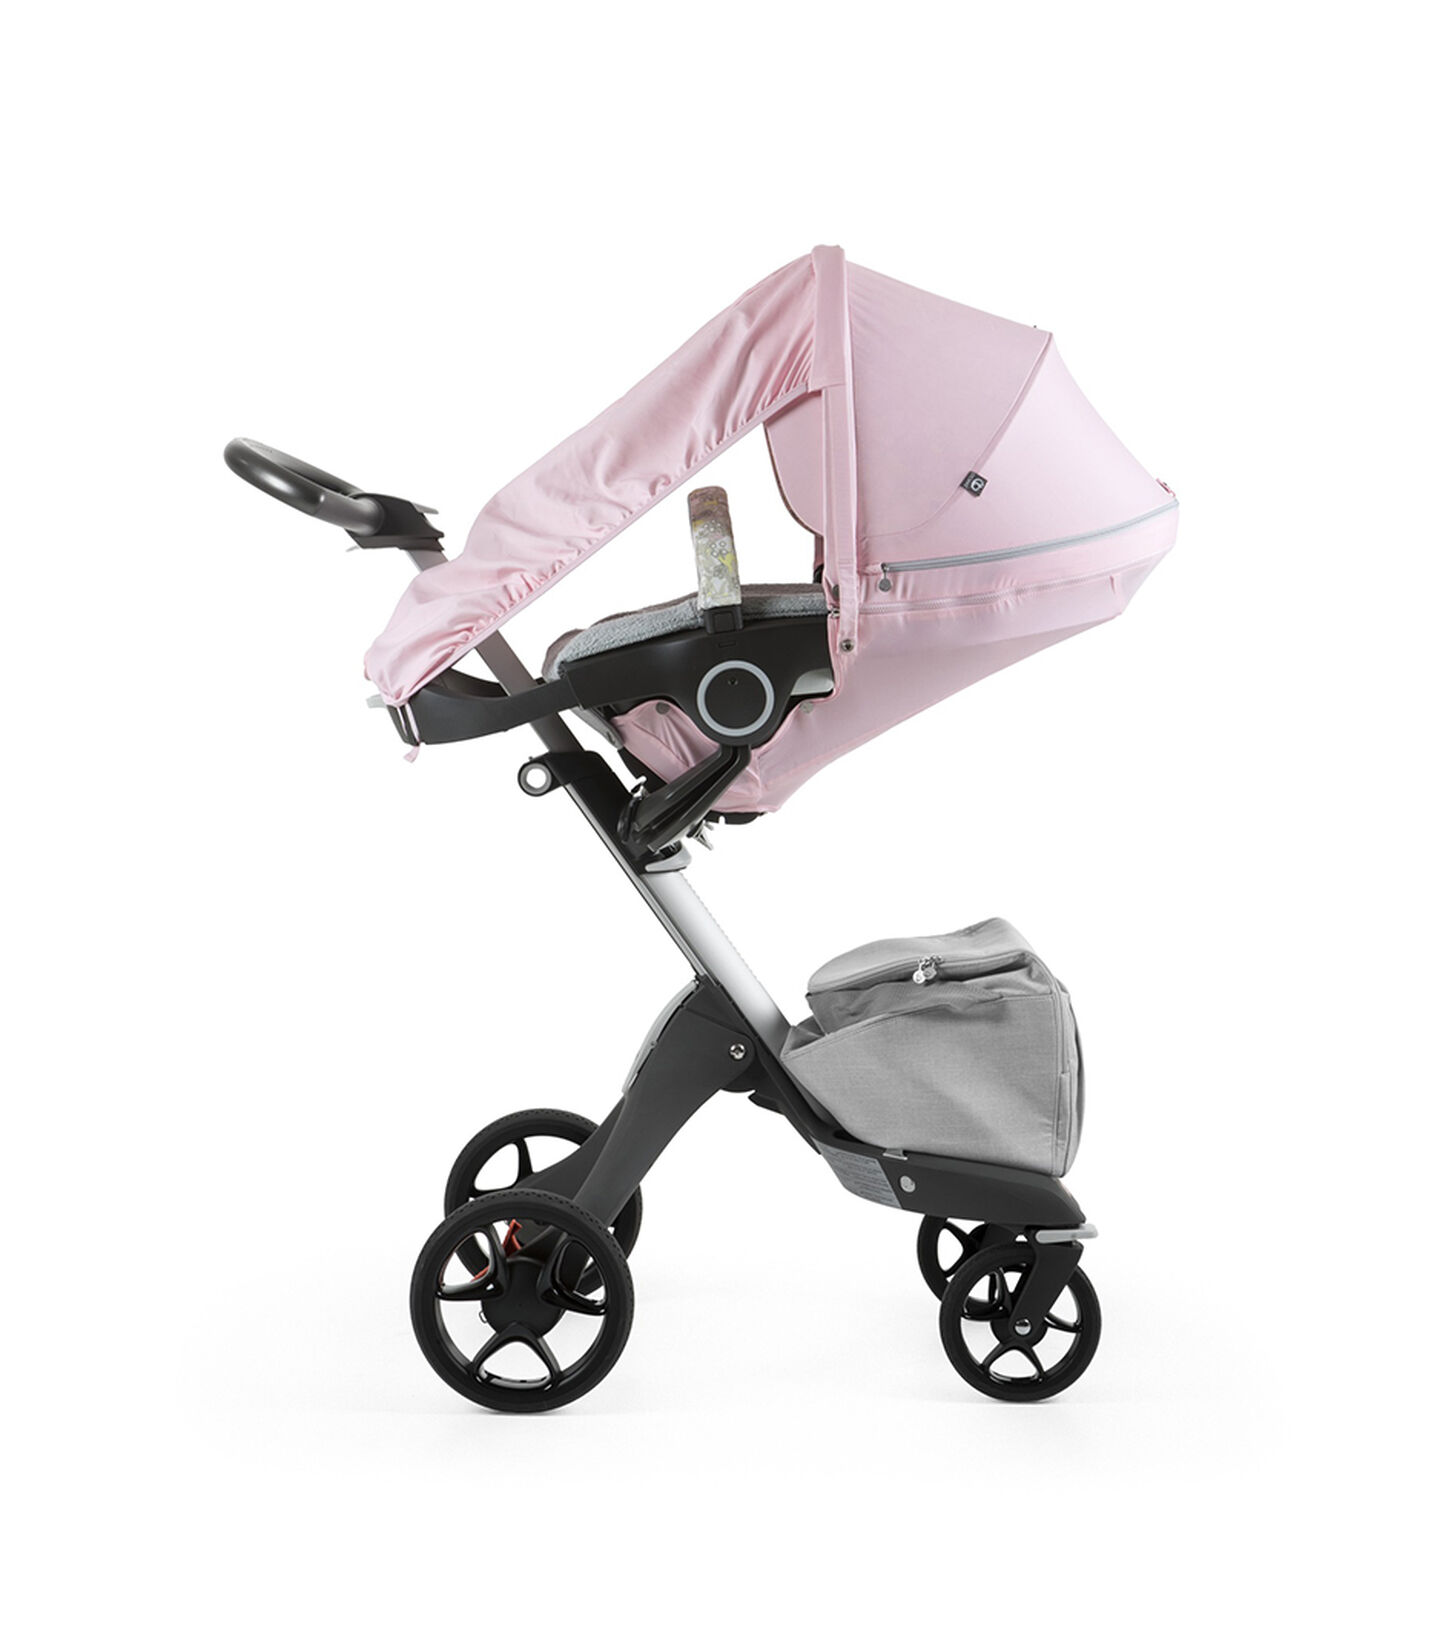 Stokke® Xplory® With Stokke® Stroller Seat and Flora Pink Summer Kit.